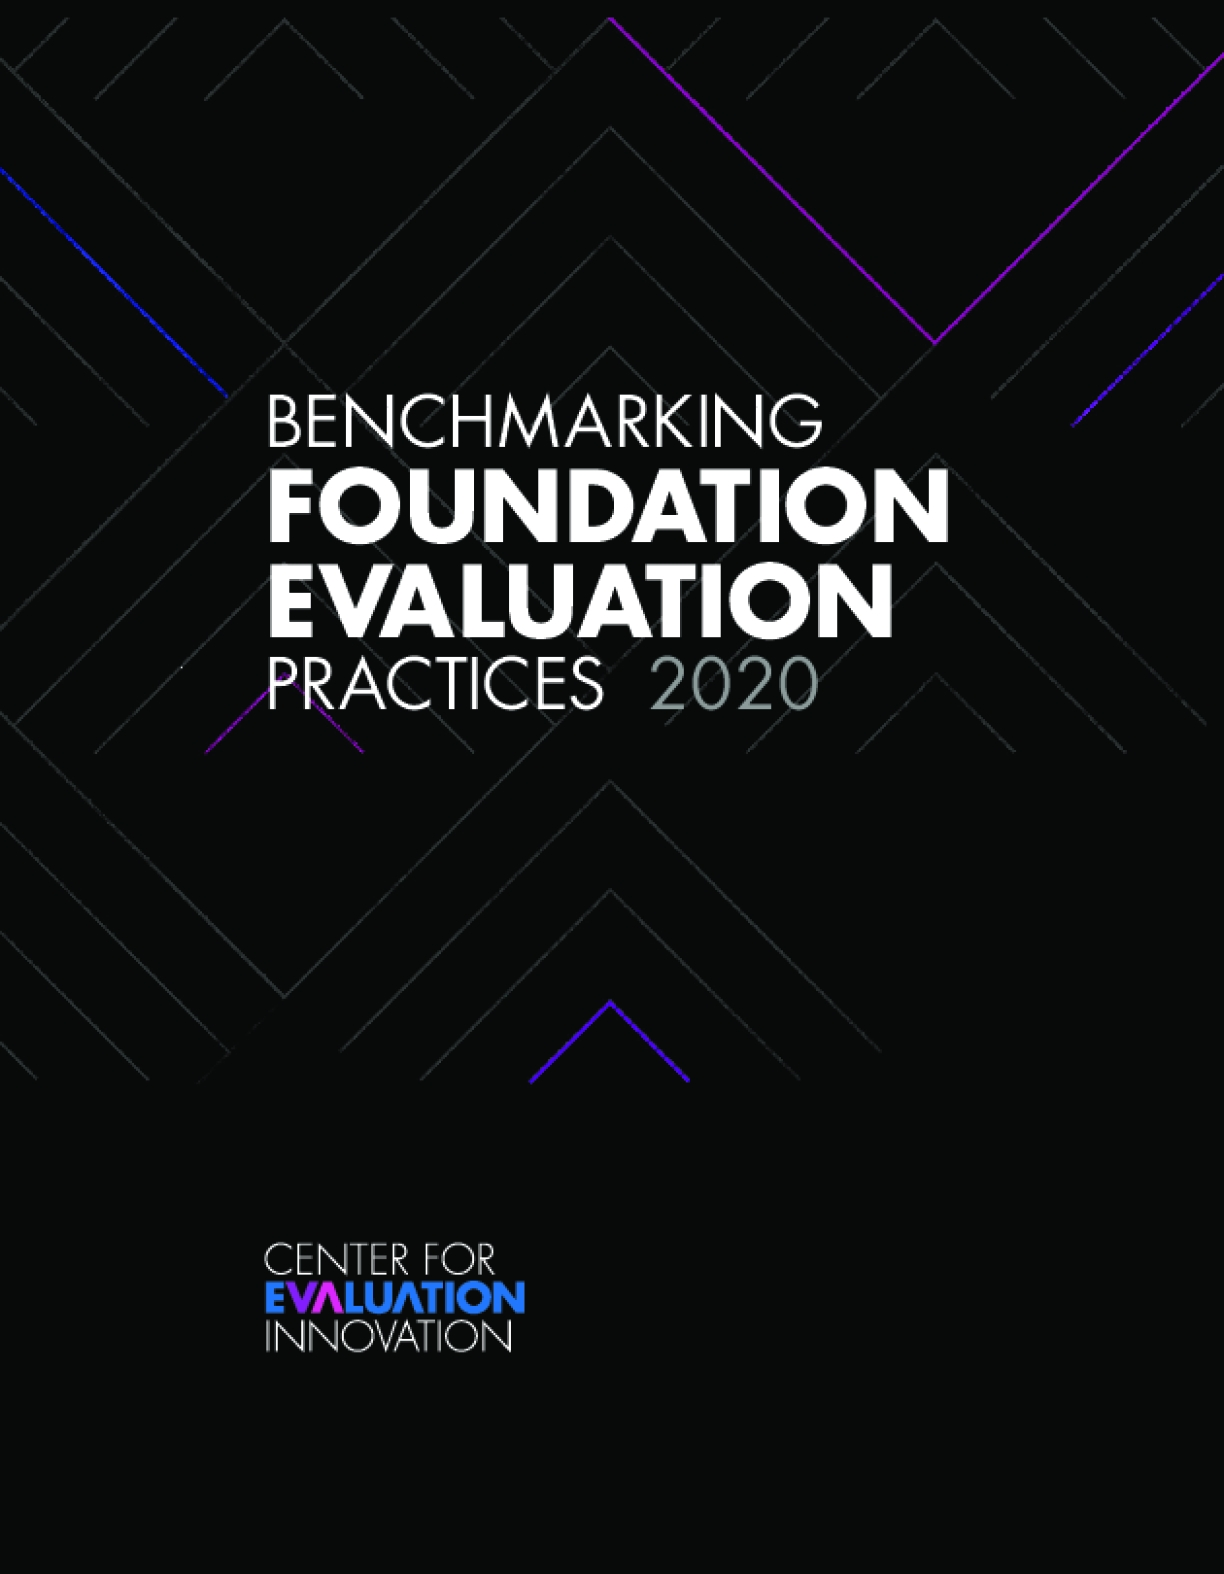 Benchmarking Foundation Evaluation Practices 2020